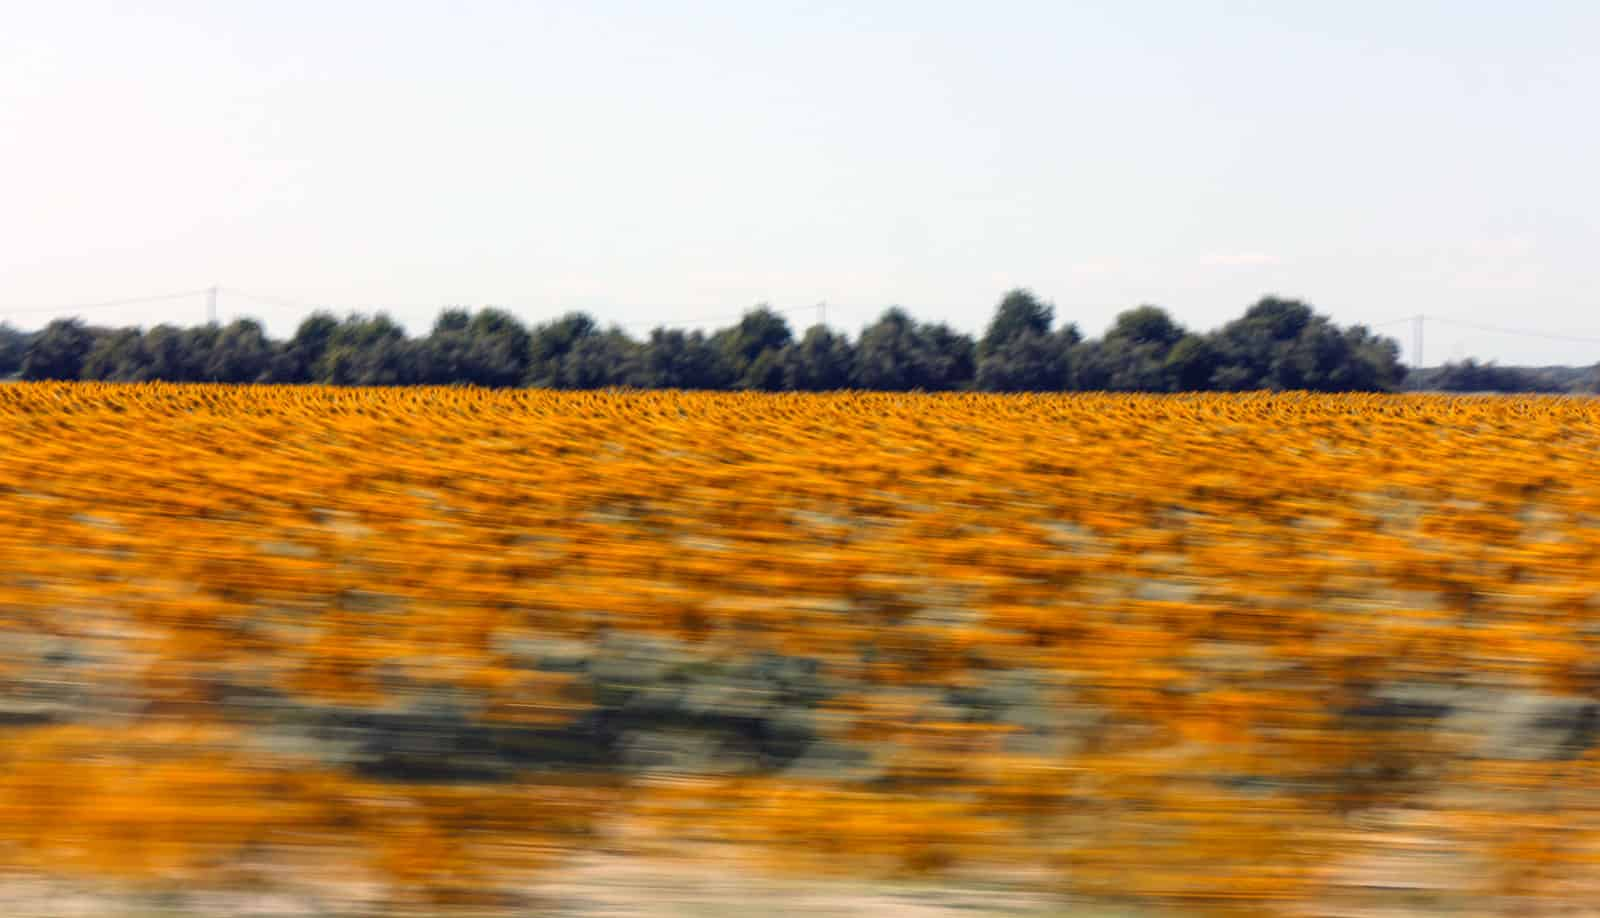 Usually quick photo snaps from the speeding vehicle turn into crap, but my fraction of a second ninja take-camera-from-backpack-point-and-shoot move resulted into quite pleasing photo of a sunflower field on our way to Italy for another summer session.